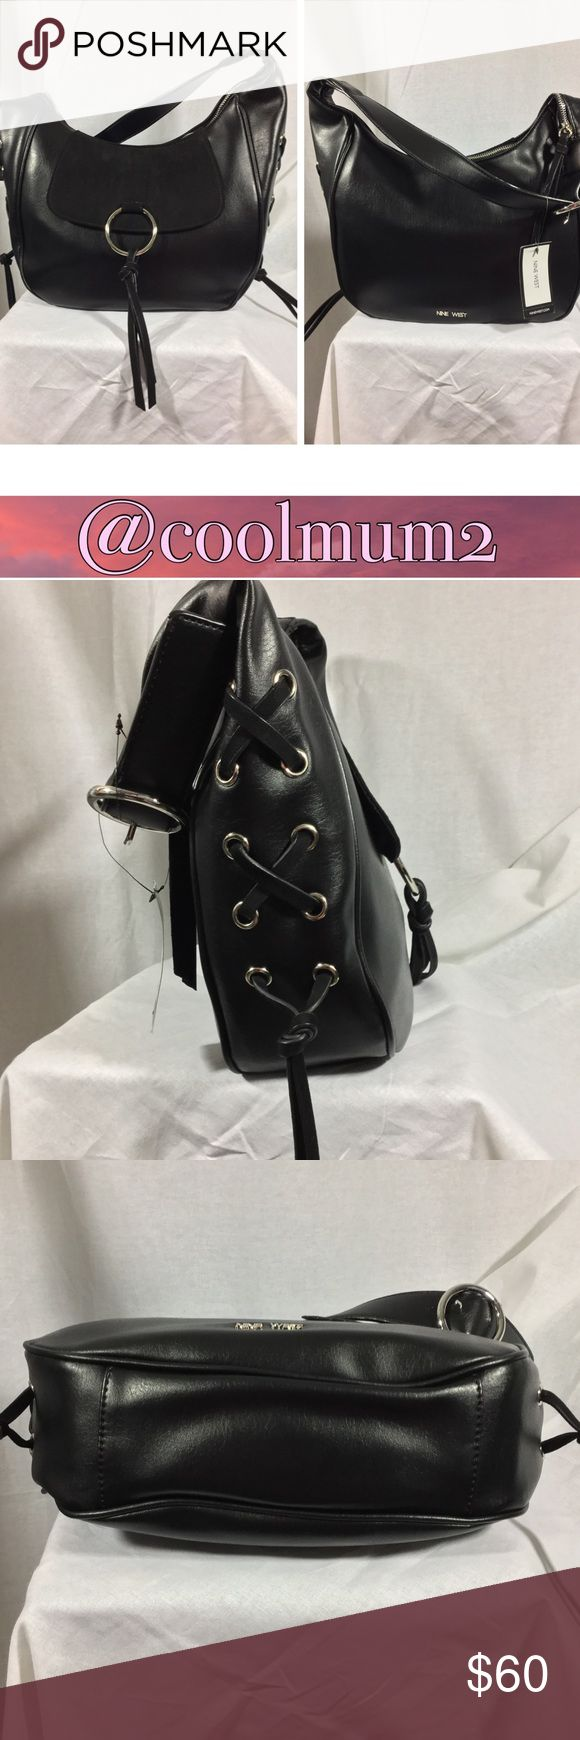 """🆕🌺Nine West Purse🌺 Nine West Purse NWT """"Ring Decoder"""" Style 12""""x4""""x9"""" 13"""" Handle Drop Faux Leather and Suede Small Pocket on Front of Outside (under faux suede flap) 1 Zip Pocket on Inside  2 Slip Pockets on Inside Silver Hardware Nine West Bags Hobos"""